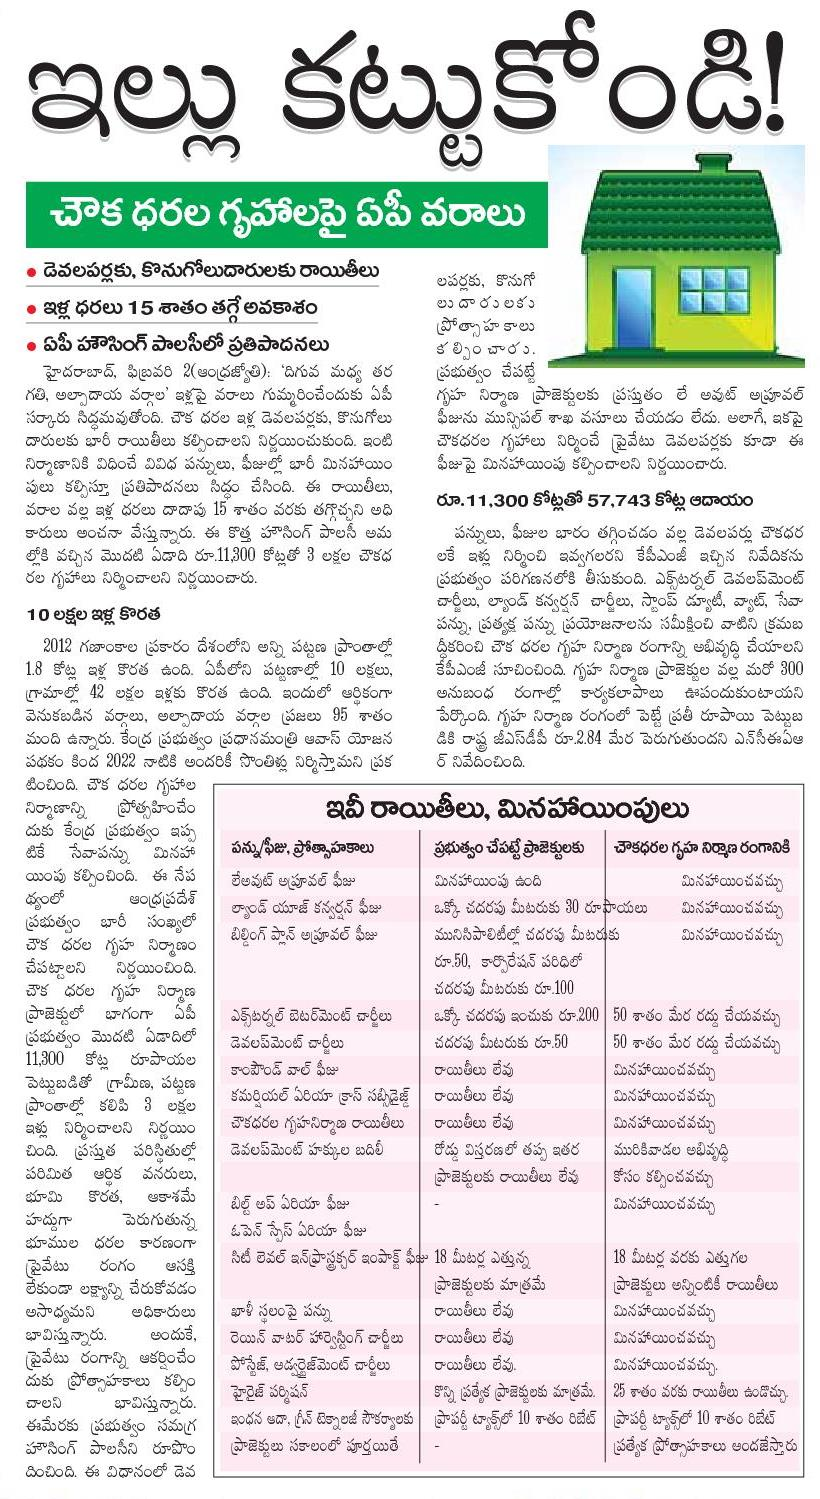 AP Housing policy offering discounts to Real estate Developers & Buyers